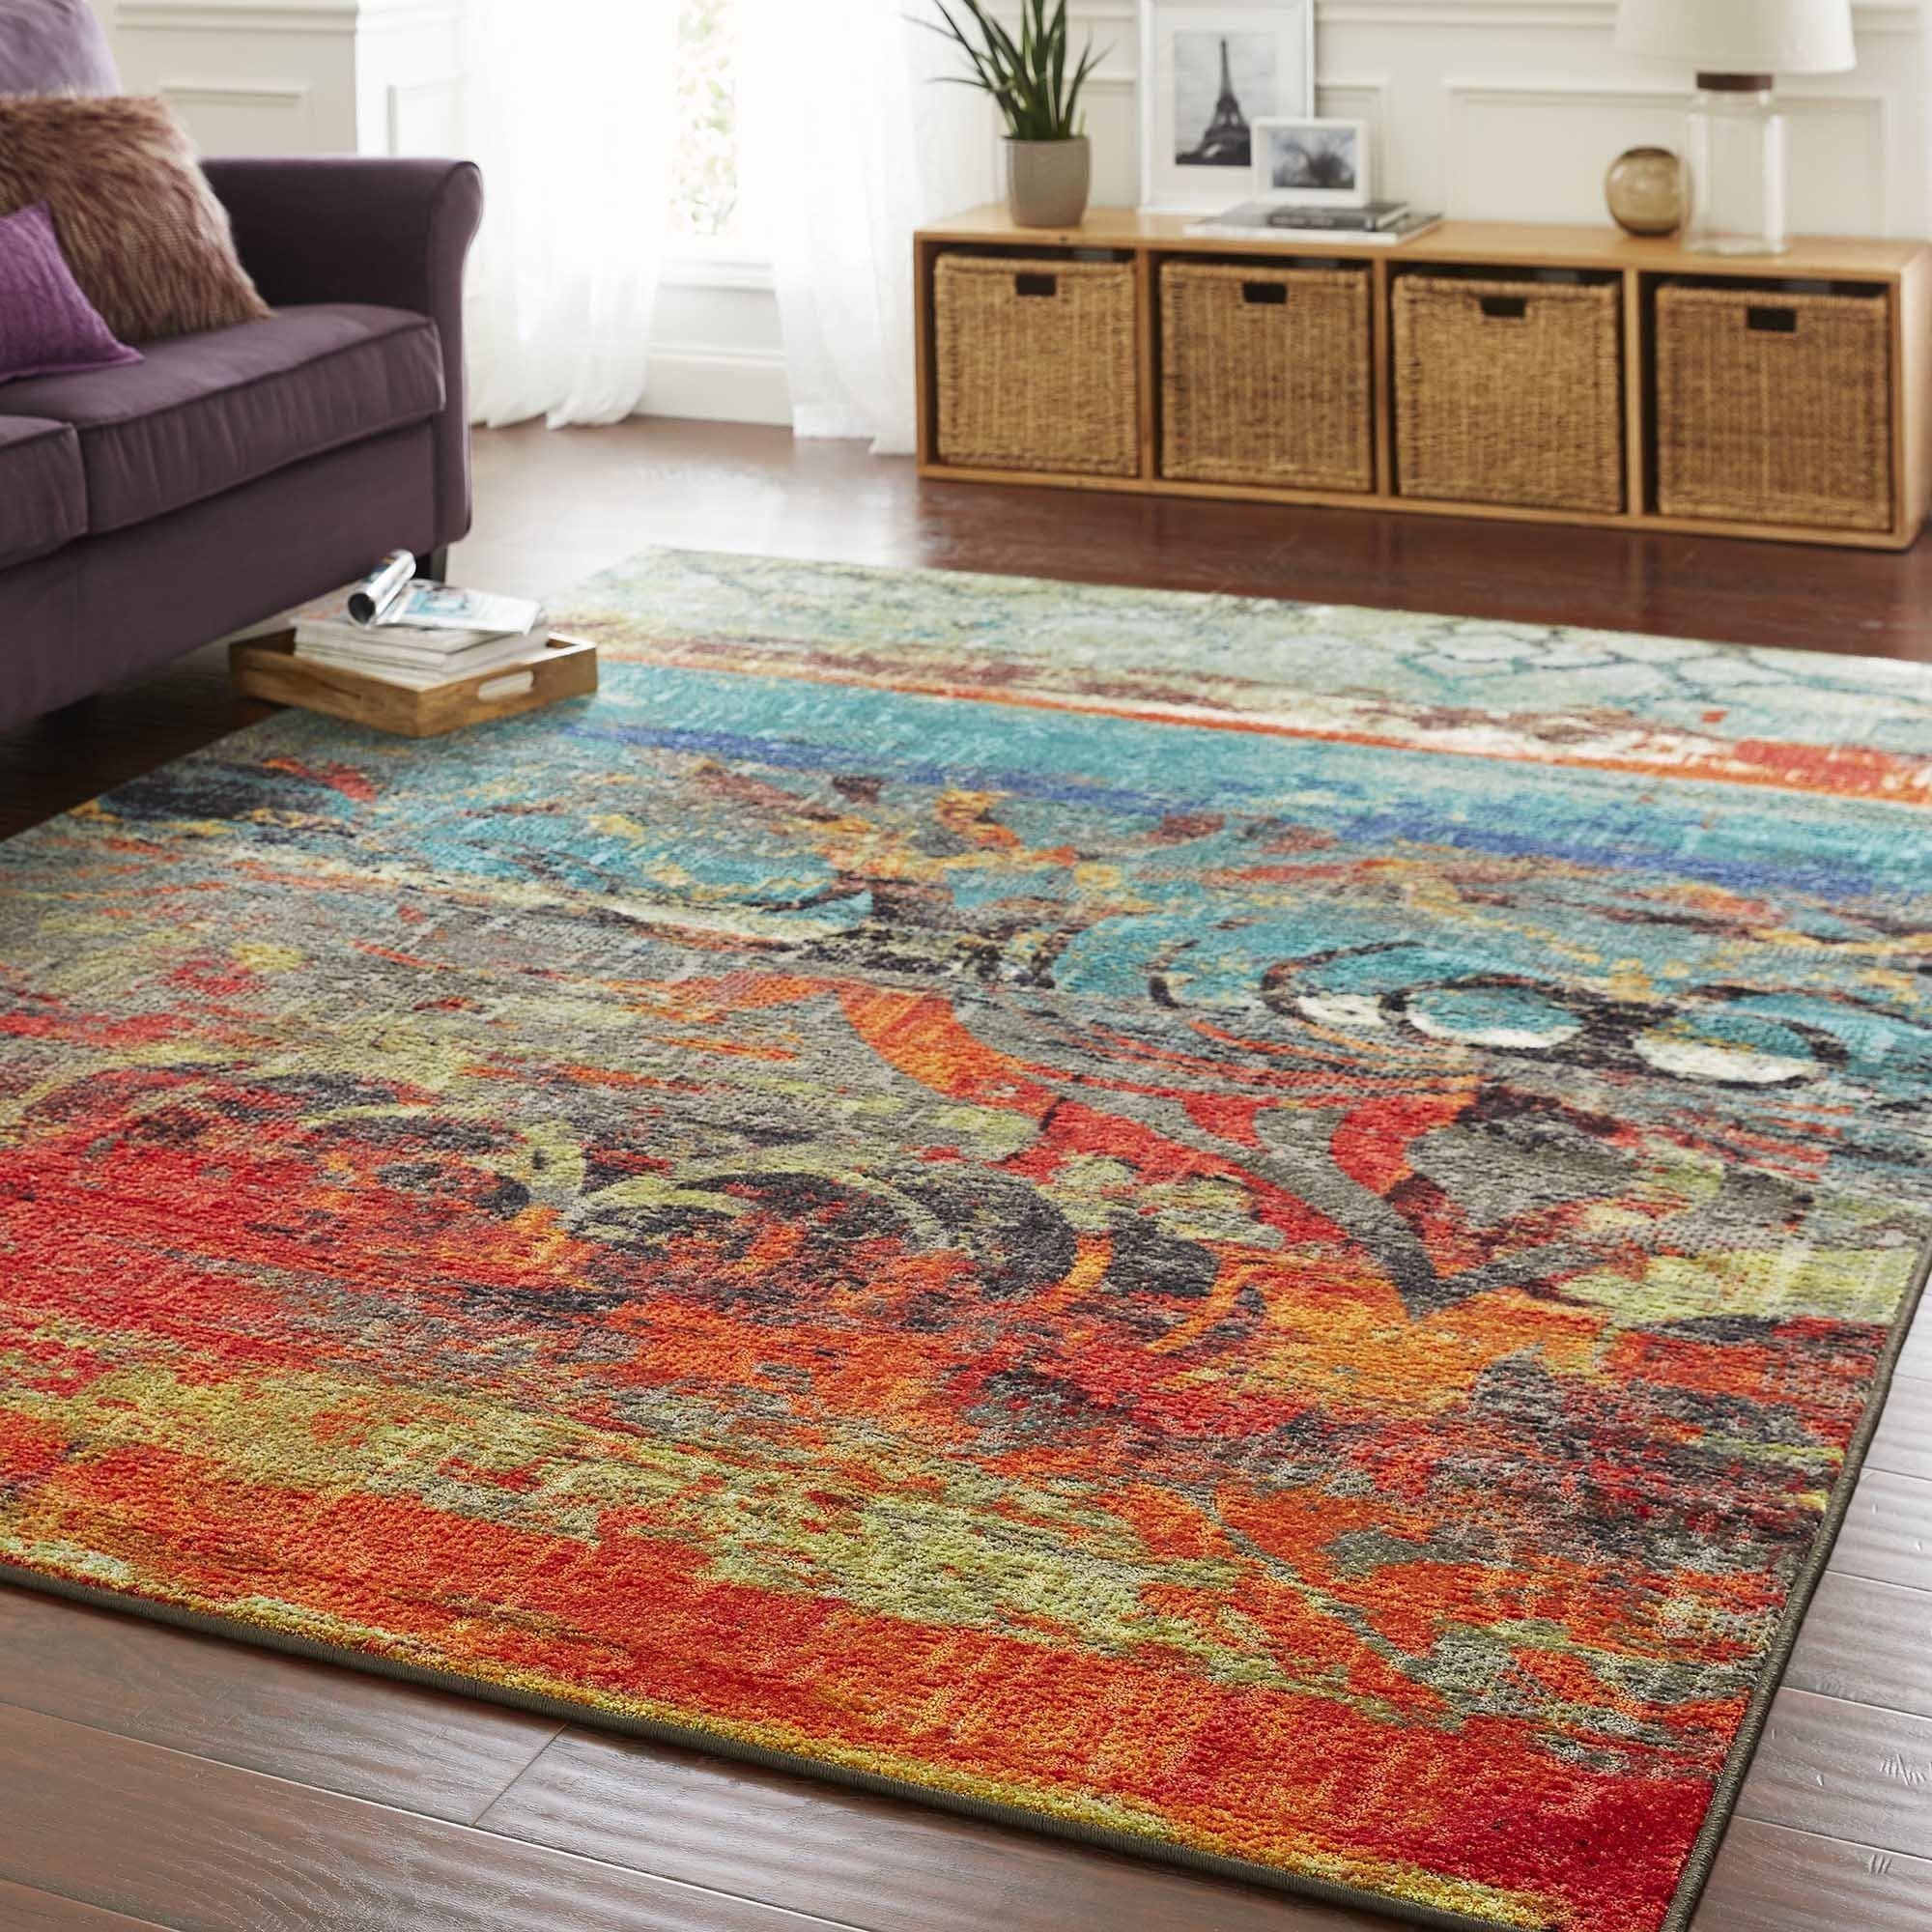 Mohawk Home Strata Eroded Color Area Rug (7'6 X 10')